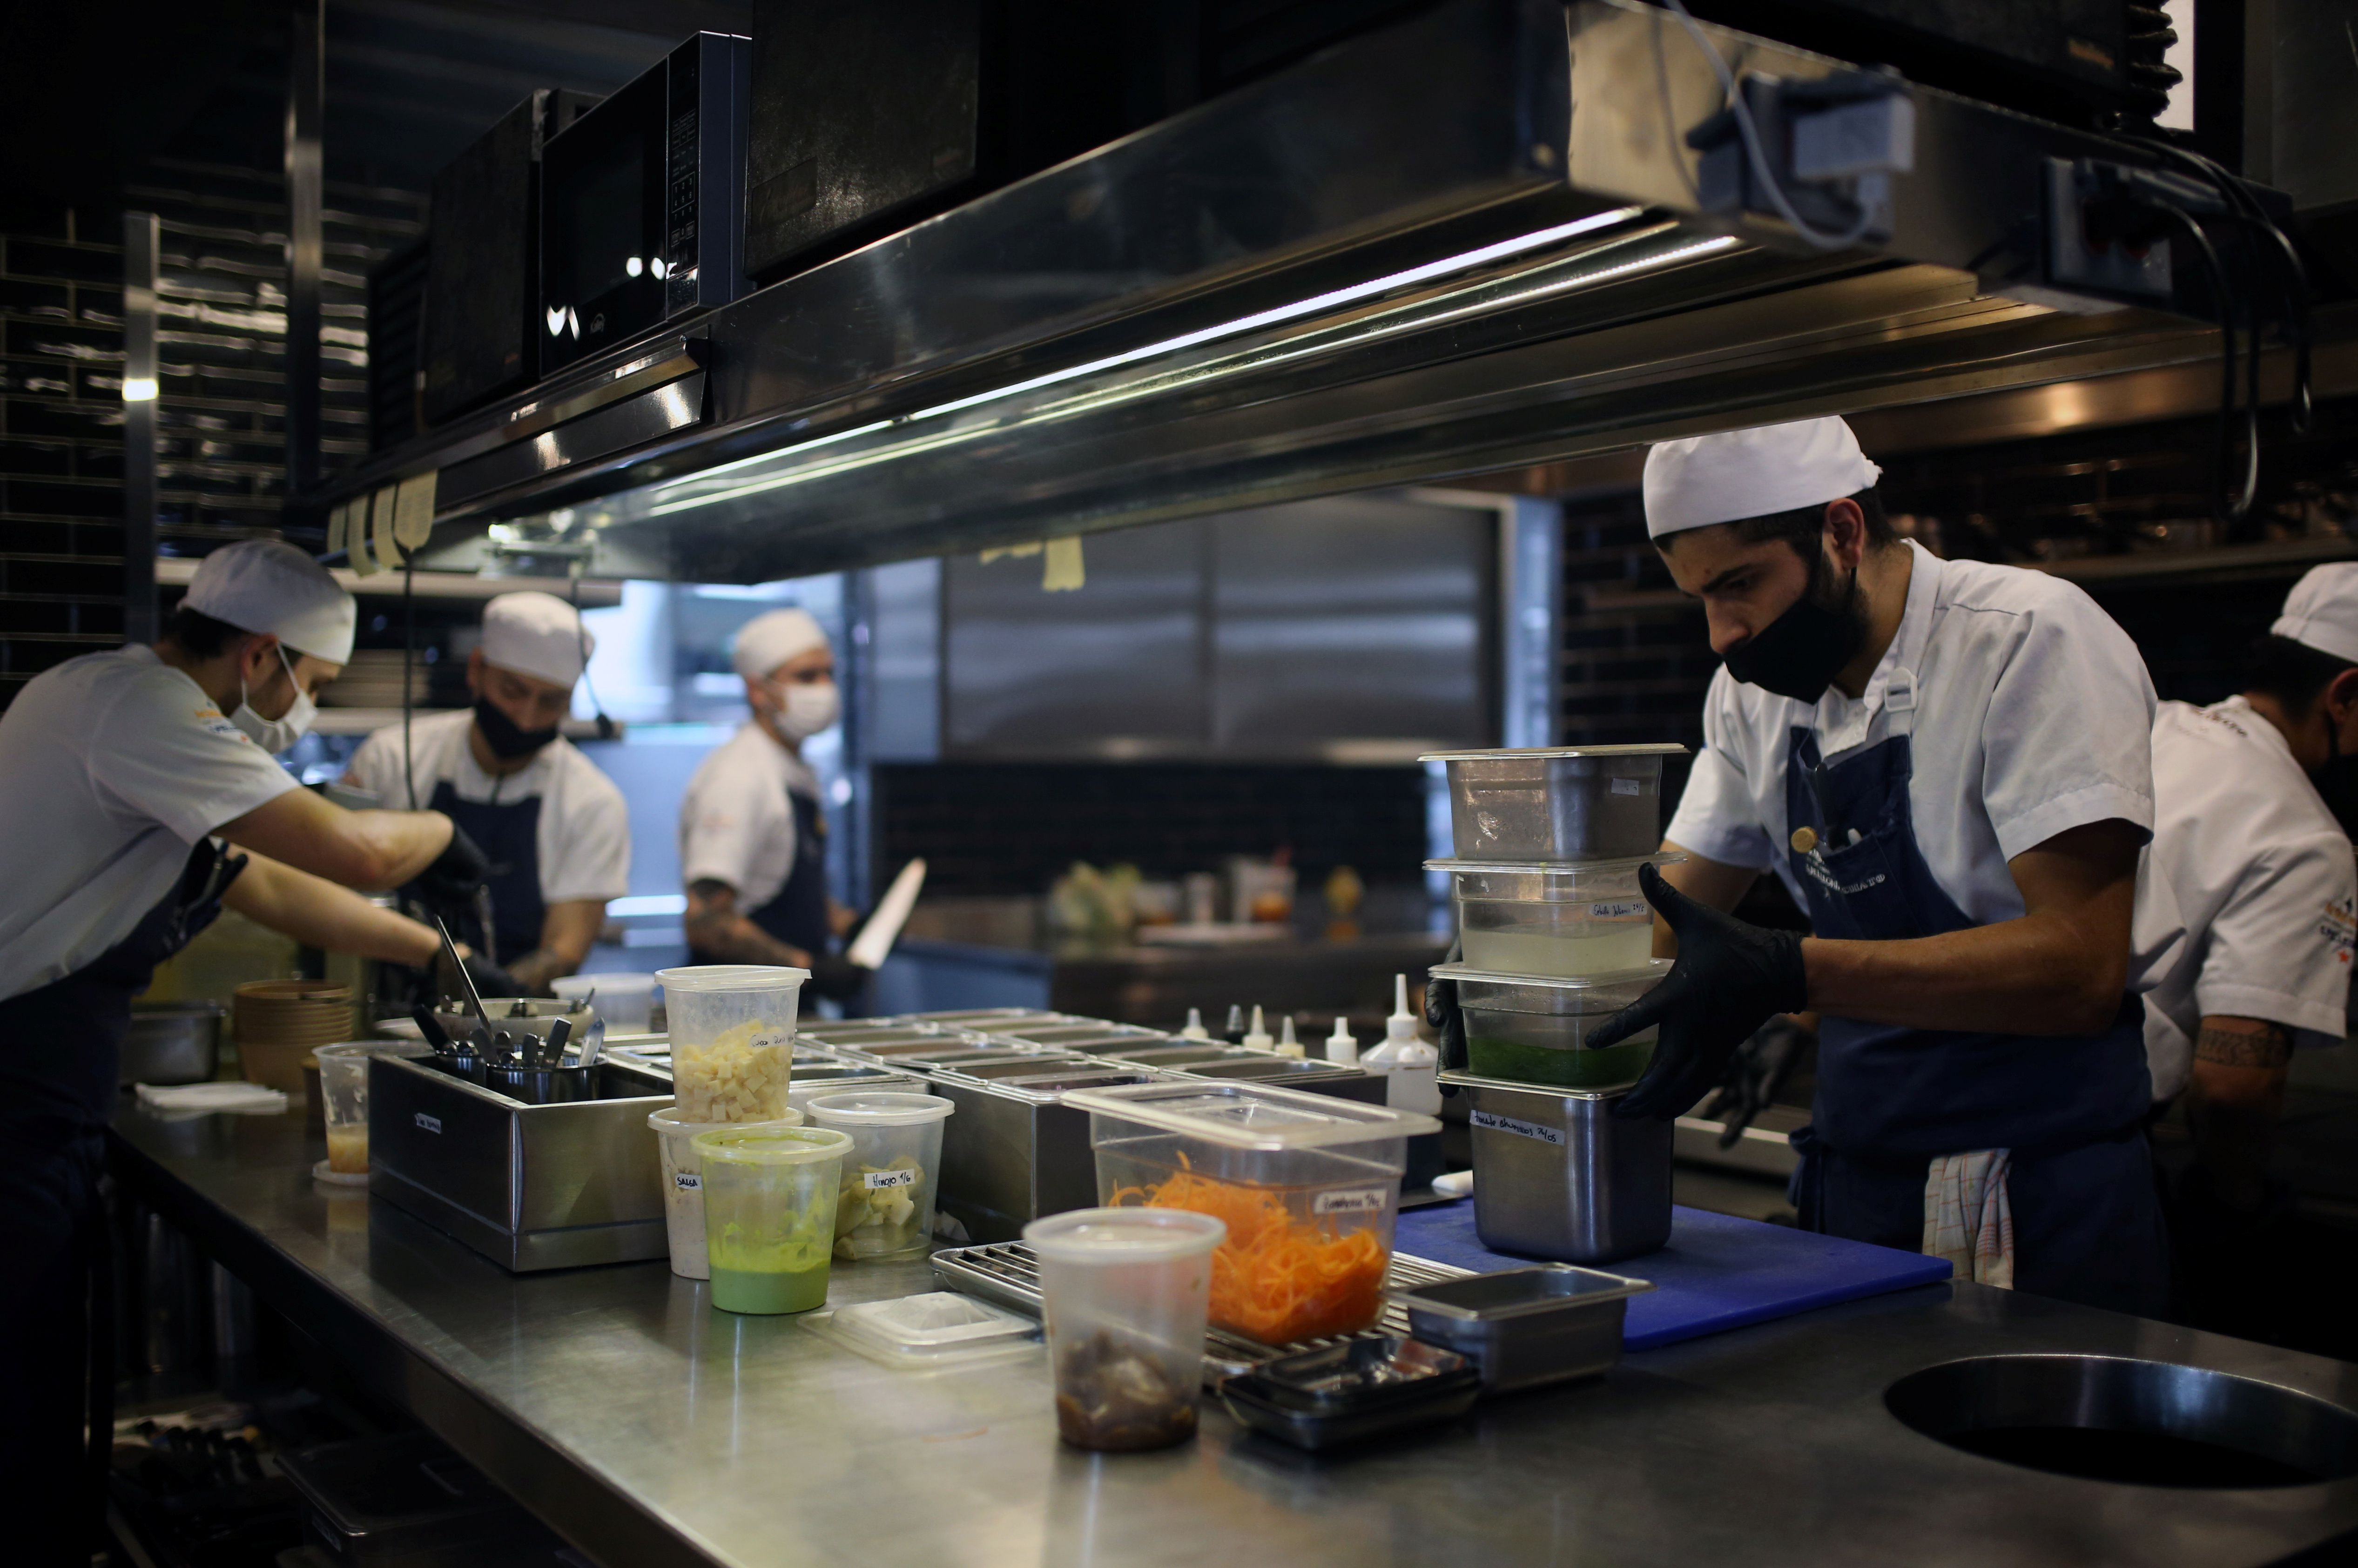 Employees of the El Chato restaurant wear face masks while preparing food for delivery, amidst the outbreak of the coronavirus disease (COVID19), in Bogota, Colombia June 2, 2020. Picture taken June 2, 2020. REUTERS/Luisa Gonzalez